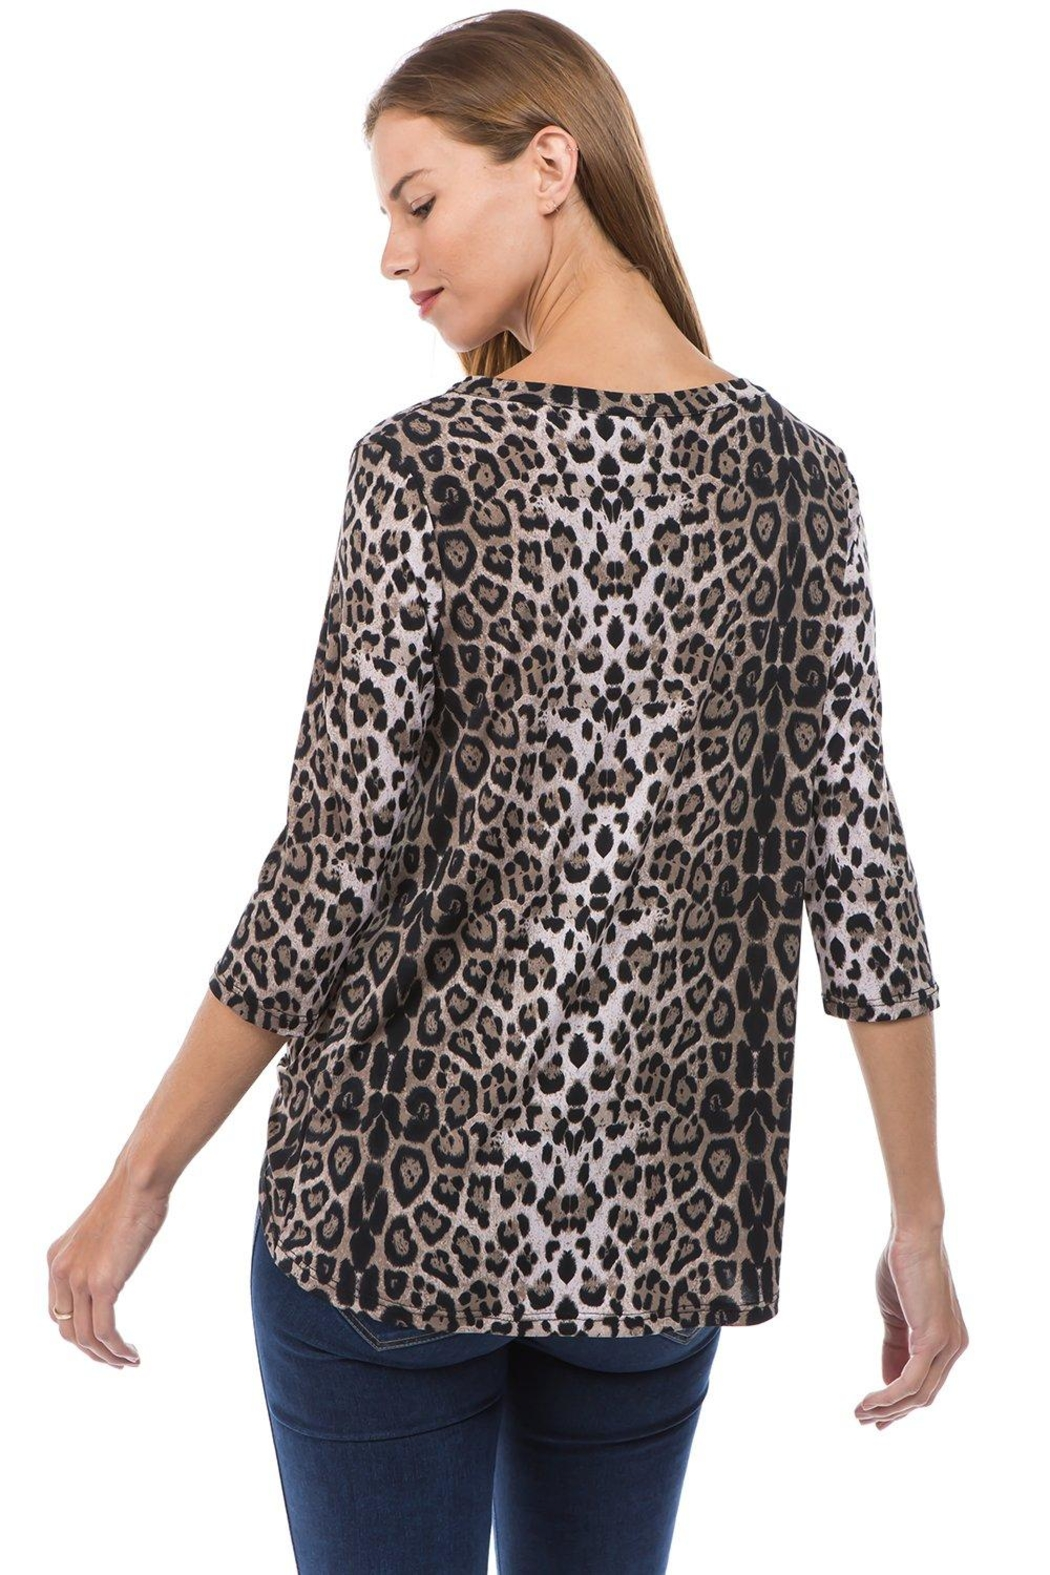 Vava by Joy Hahn Rosalie Knot-Front Top - Side Cropped Image